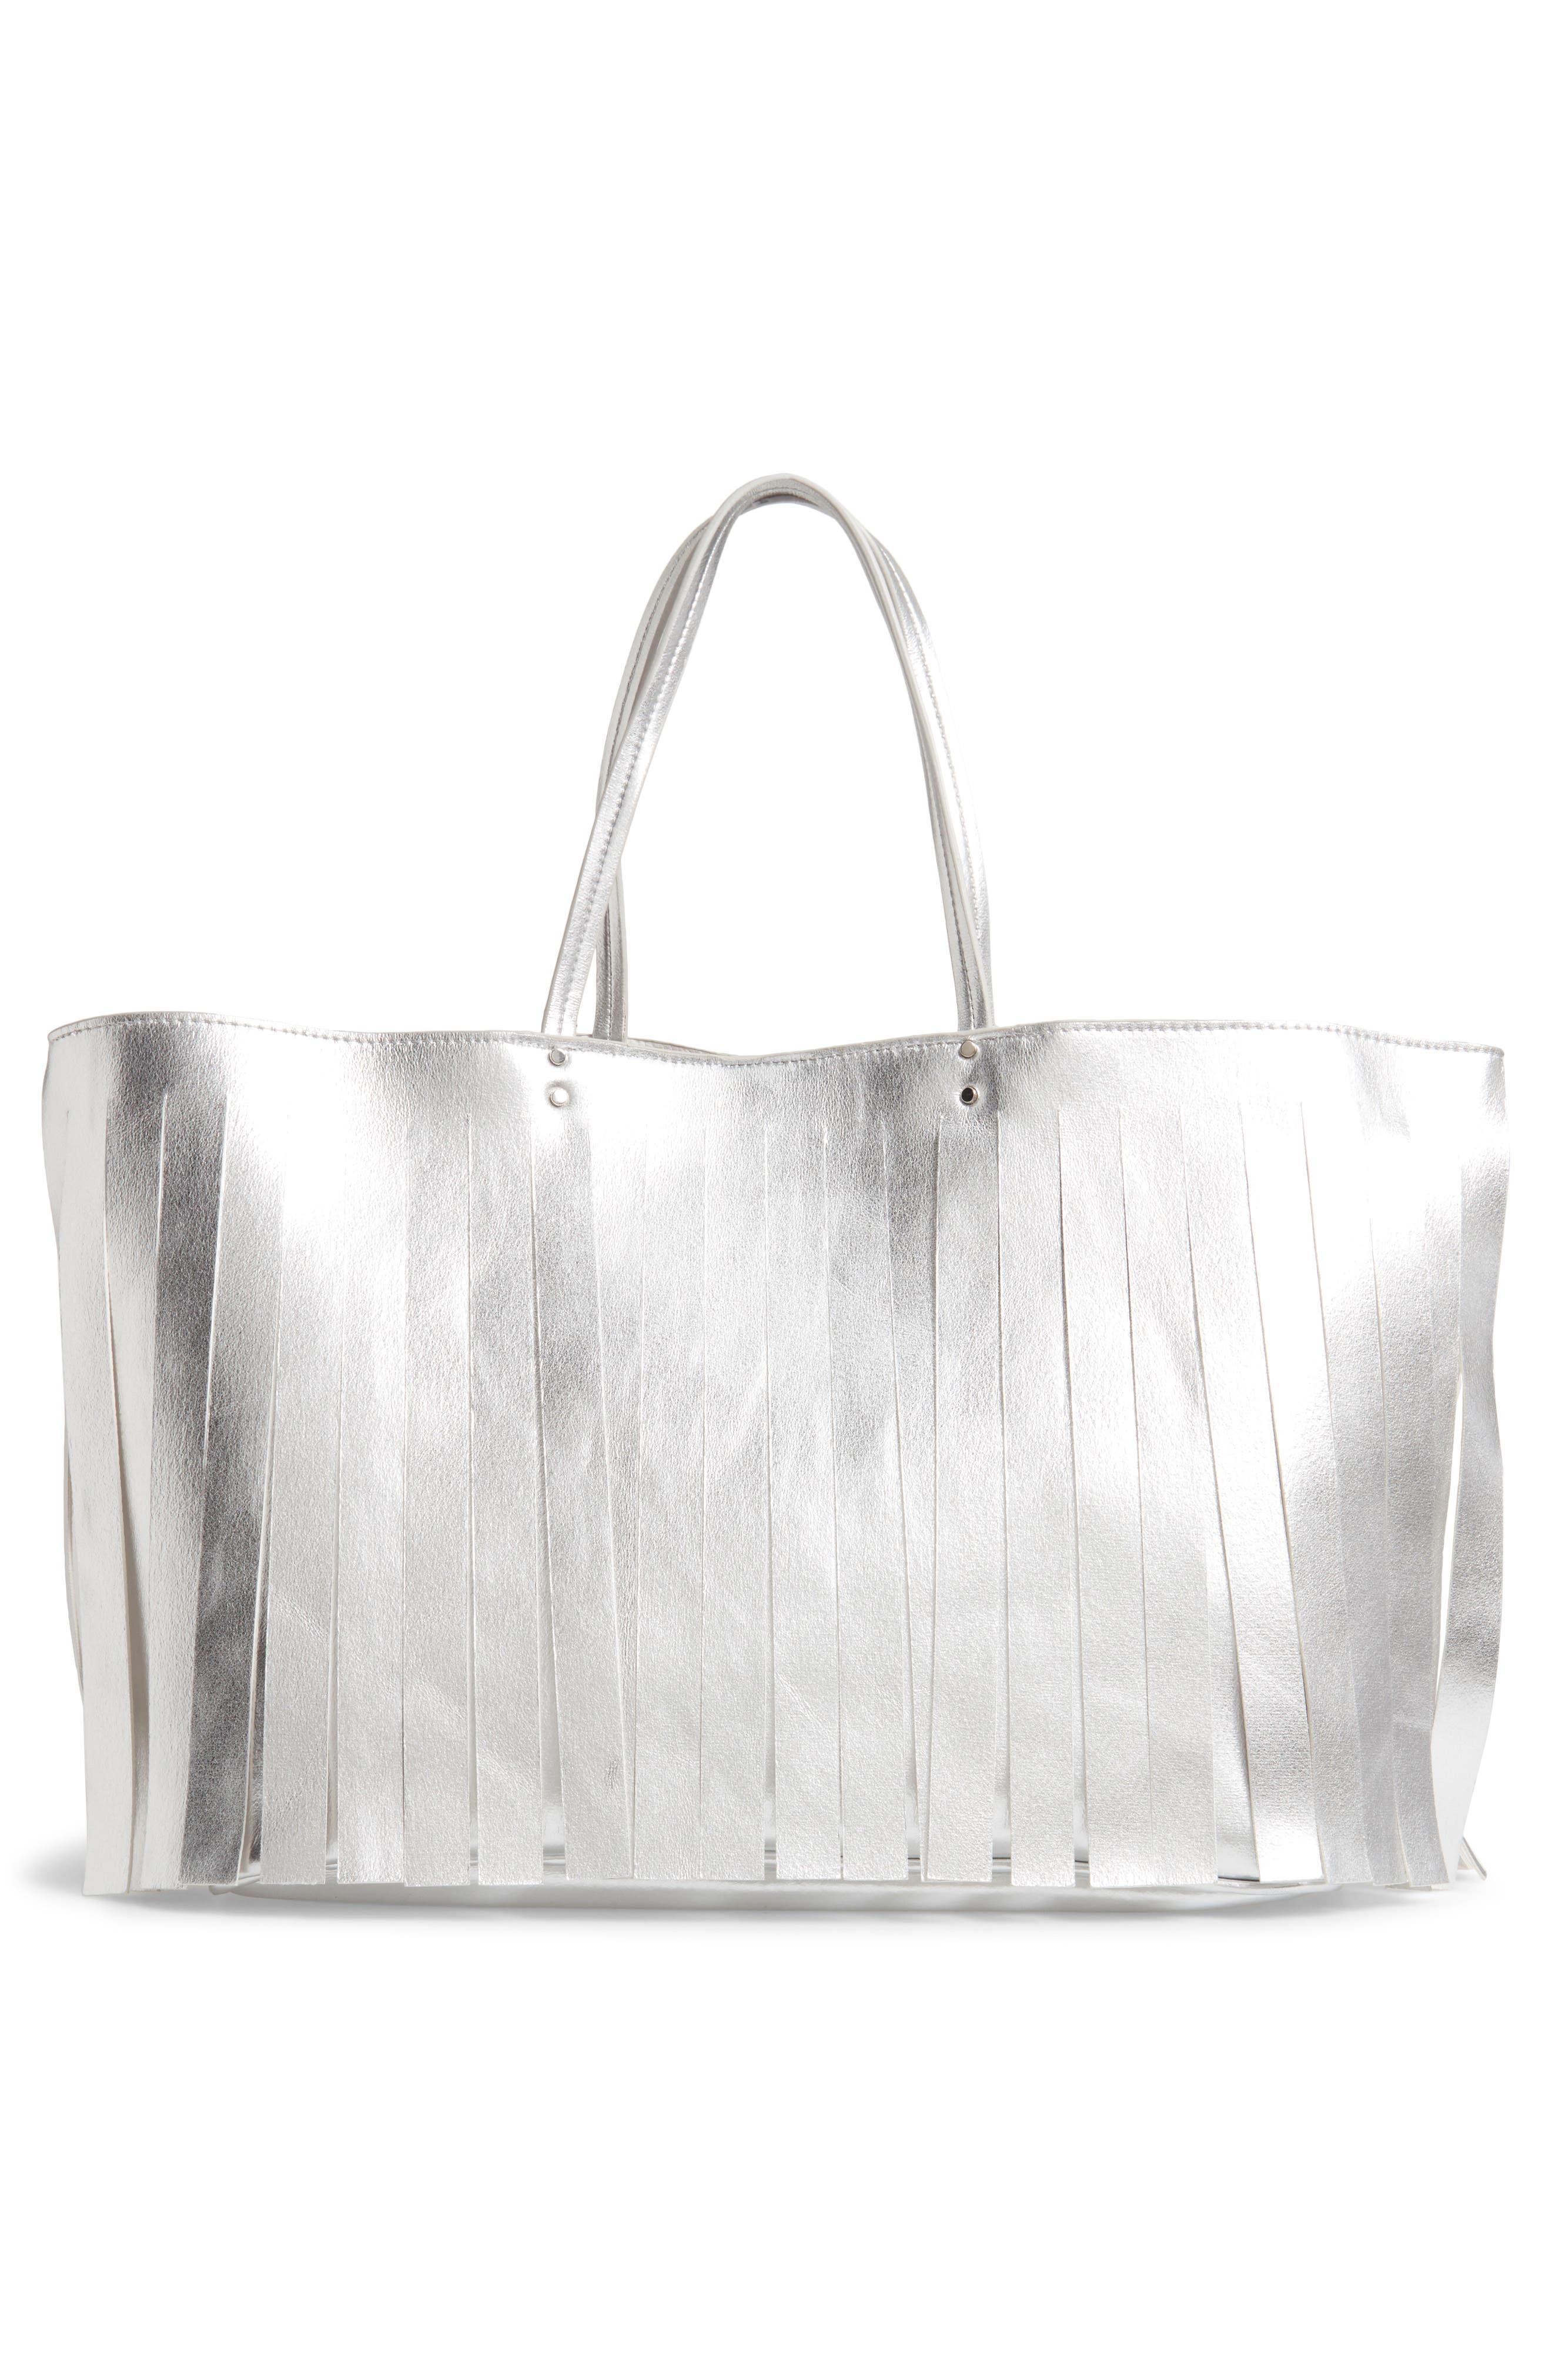 Corrie Fringe Faux Leather Tote,                             Alternate thumbnail 3, color,                             SILVER